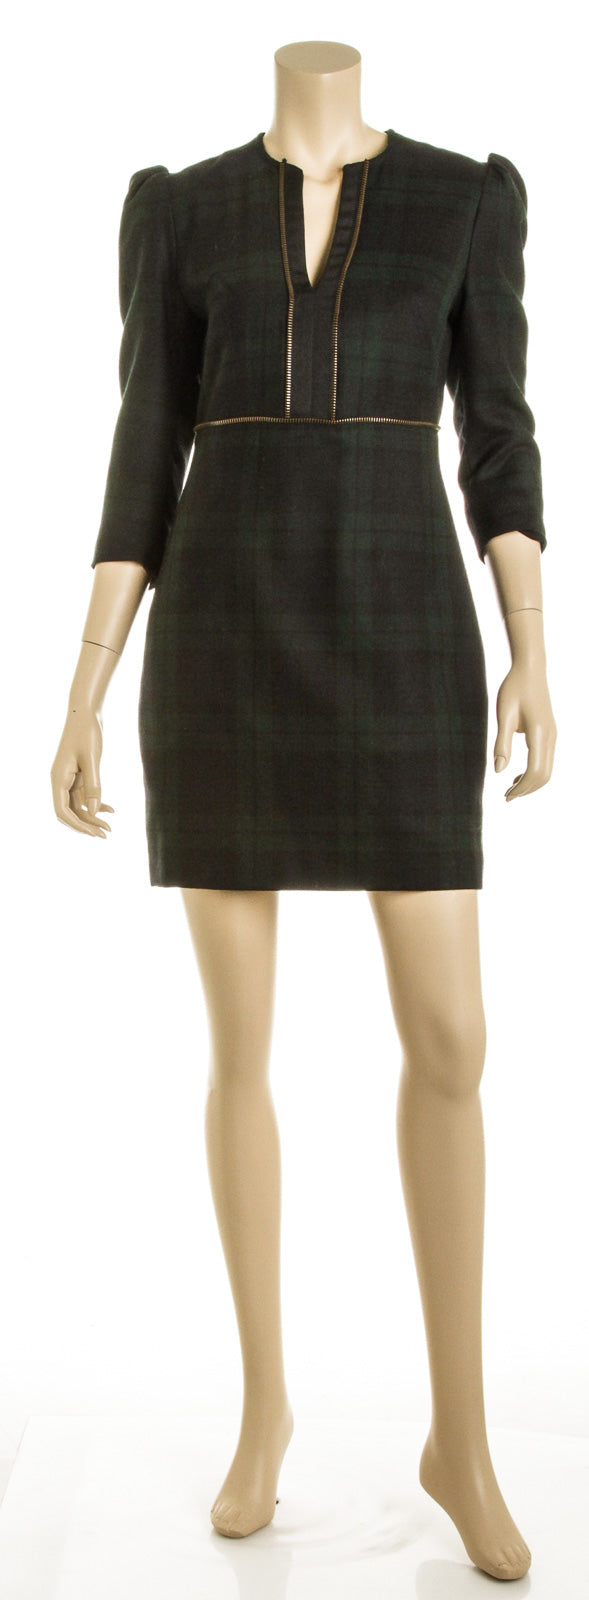 Alexander McQueen Green Blue and Black Tartan Wool Dress (Size 44)